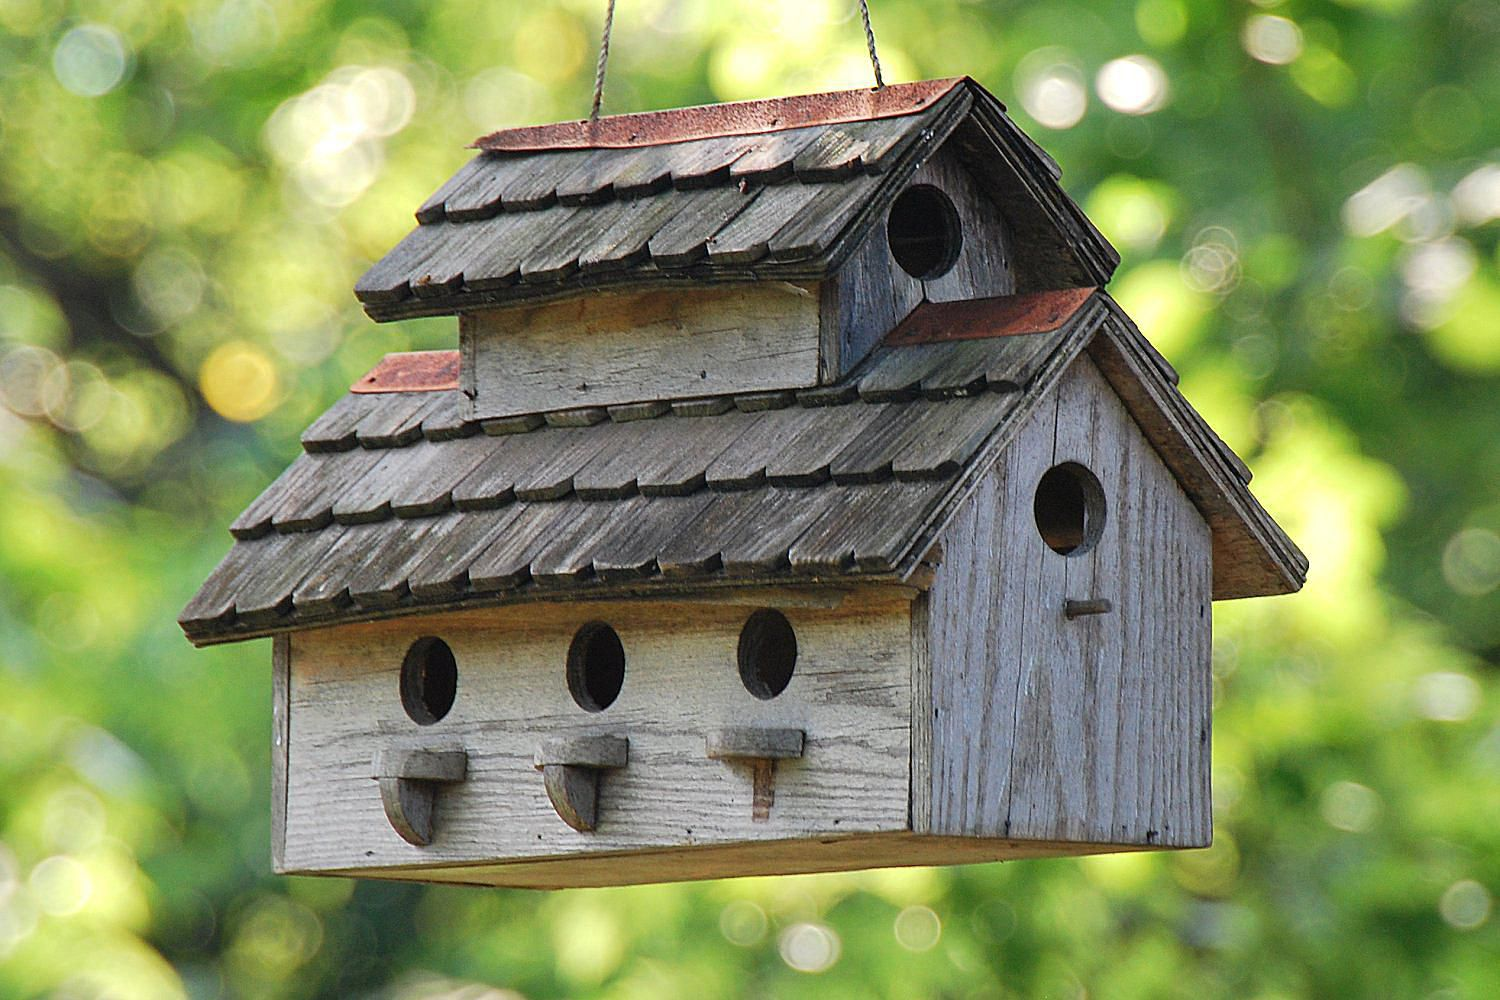 Birdhouse building tips and resources - Building a new home ideas ...